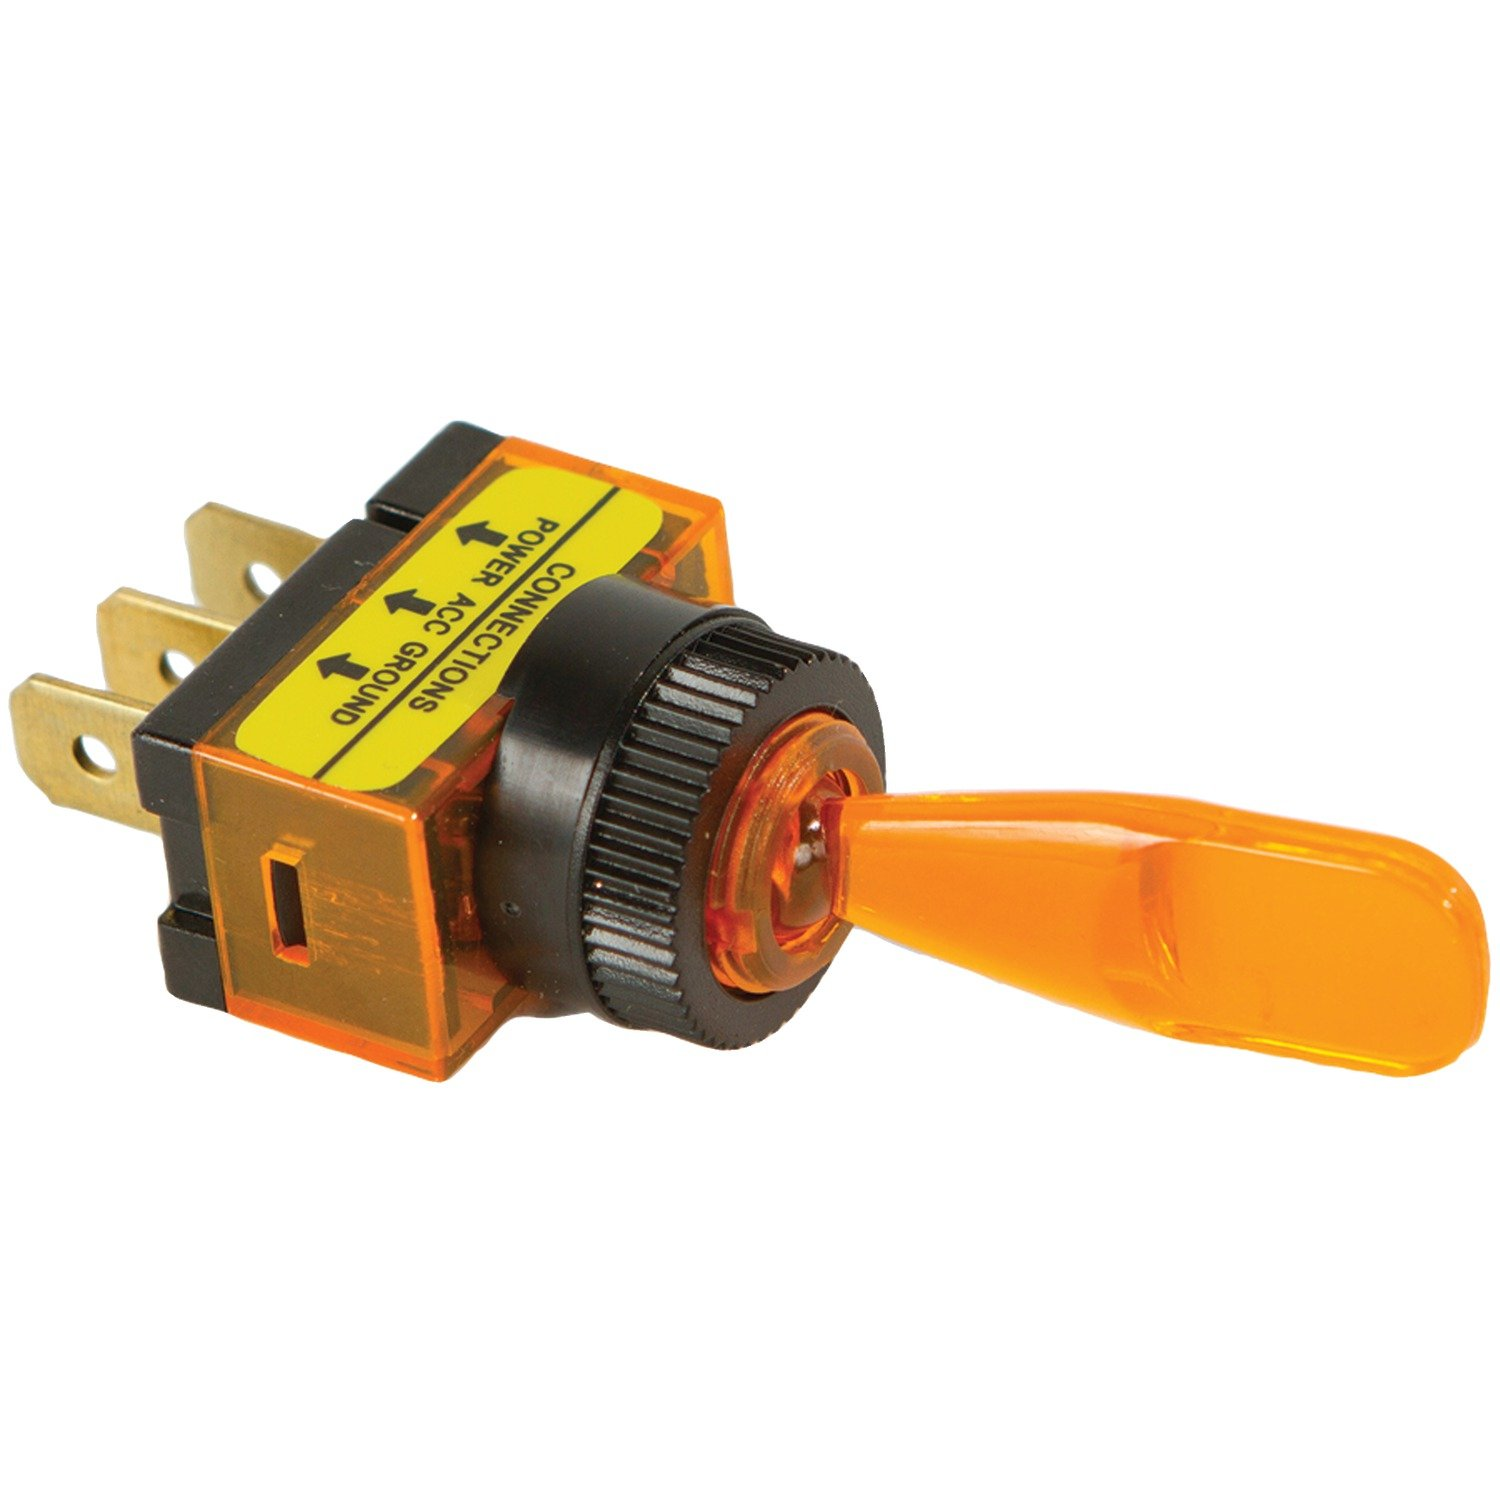 Battery Doctor 20502 On/Off Illuminated 20-Amp Toggle Switch, Amber